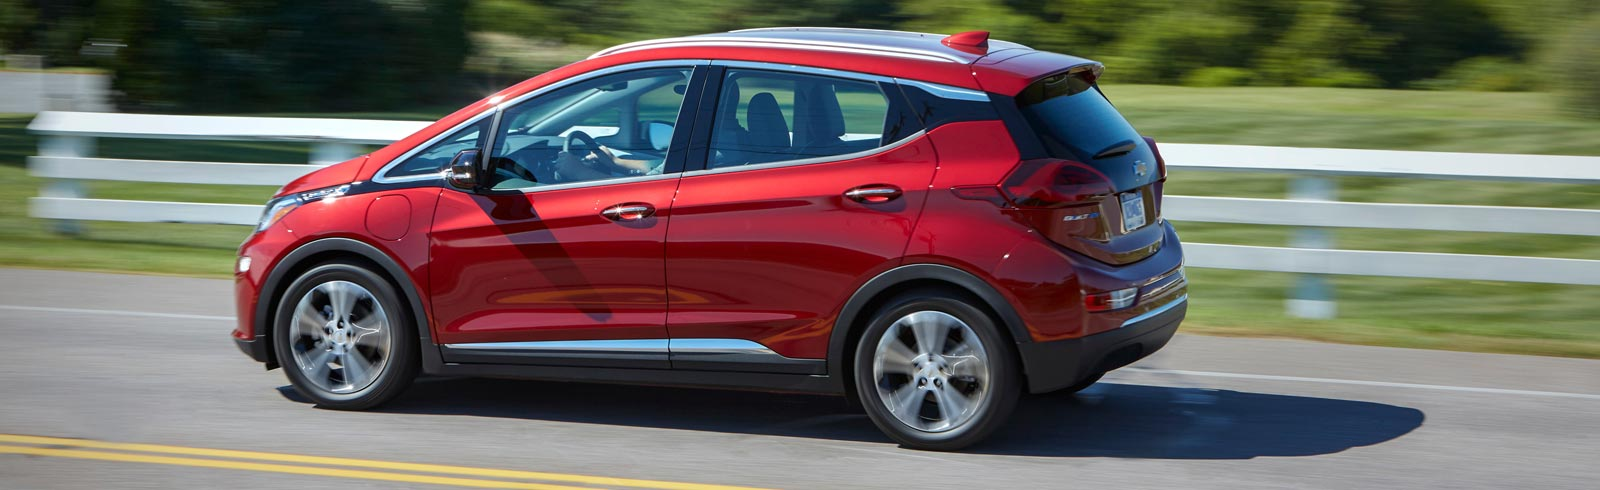 2020 Chevy Bolt EV is official, increases range to 259 miles (EPA)